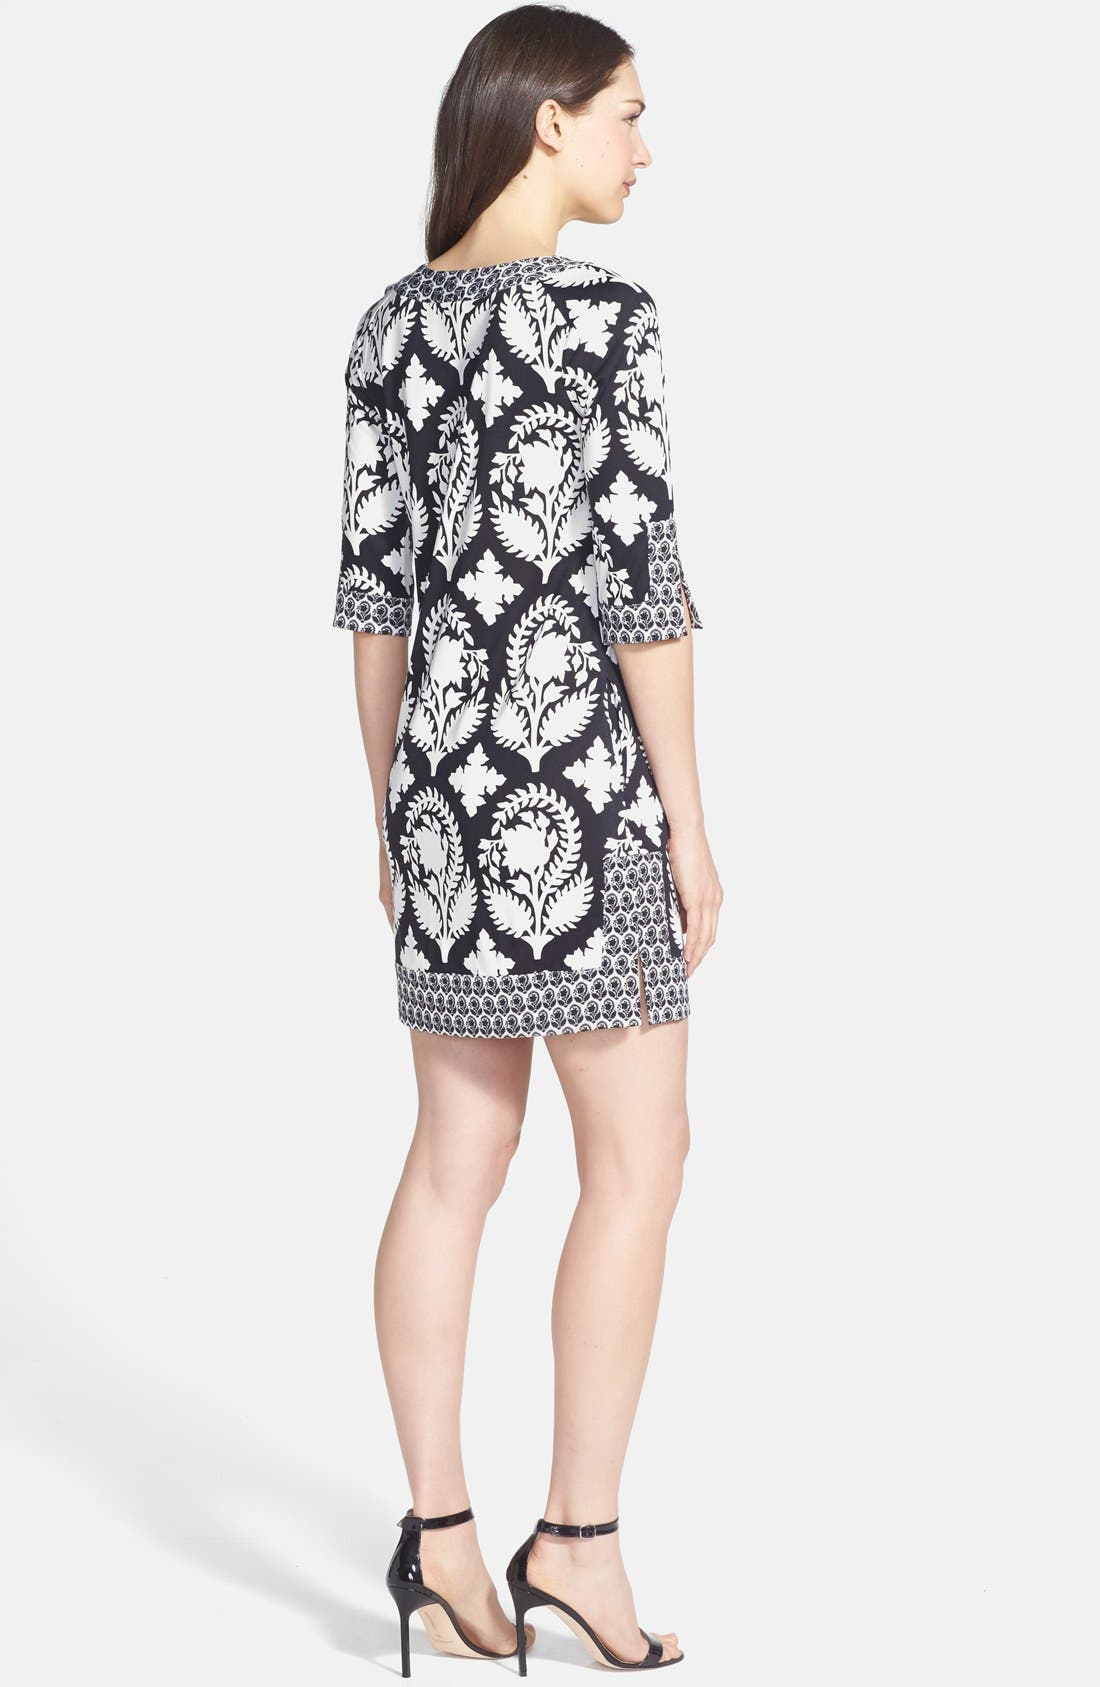 DIANE VON FURSTENBERG,                             'Eloise' Silk Knit Shift Dress,                             Alternate thumbnail 2, color,                             015